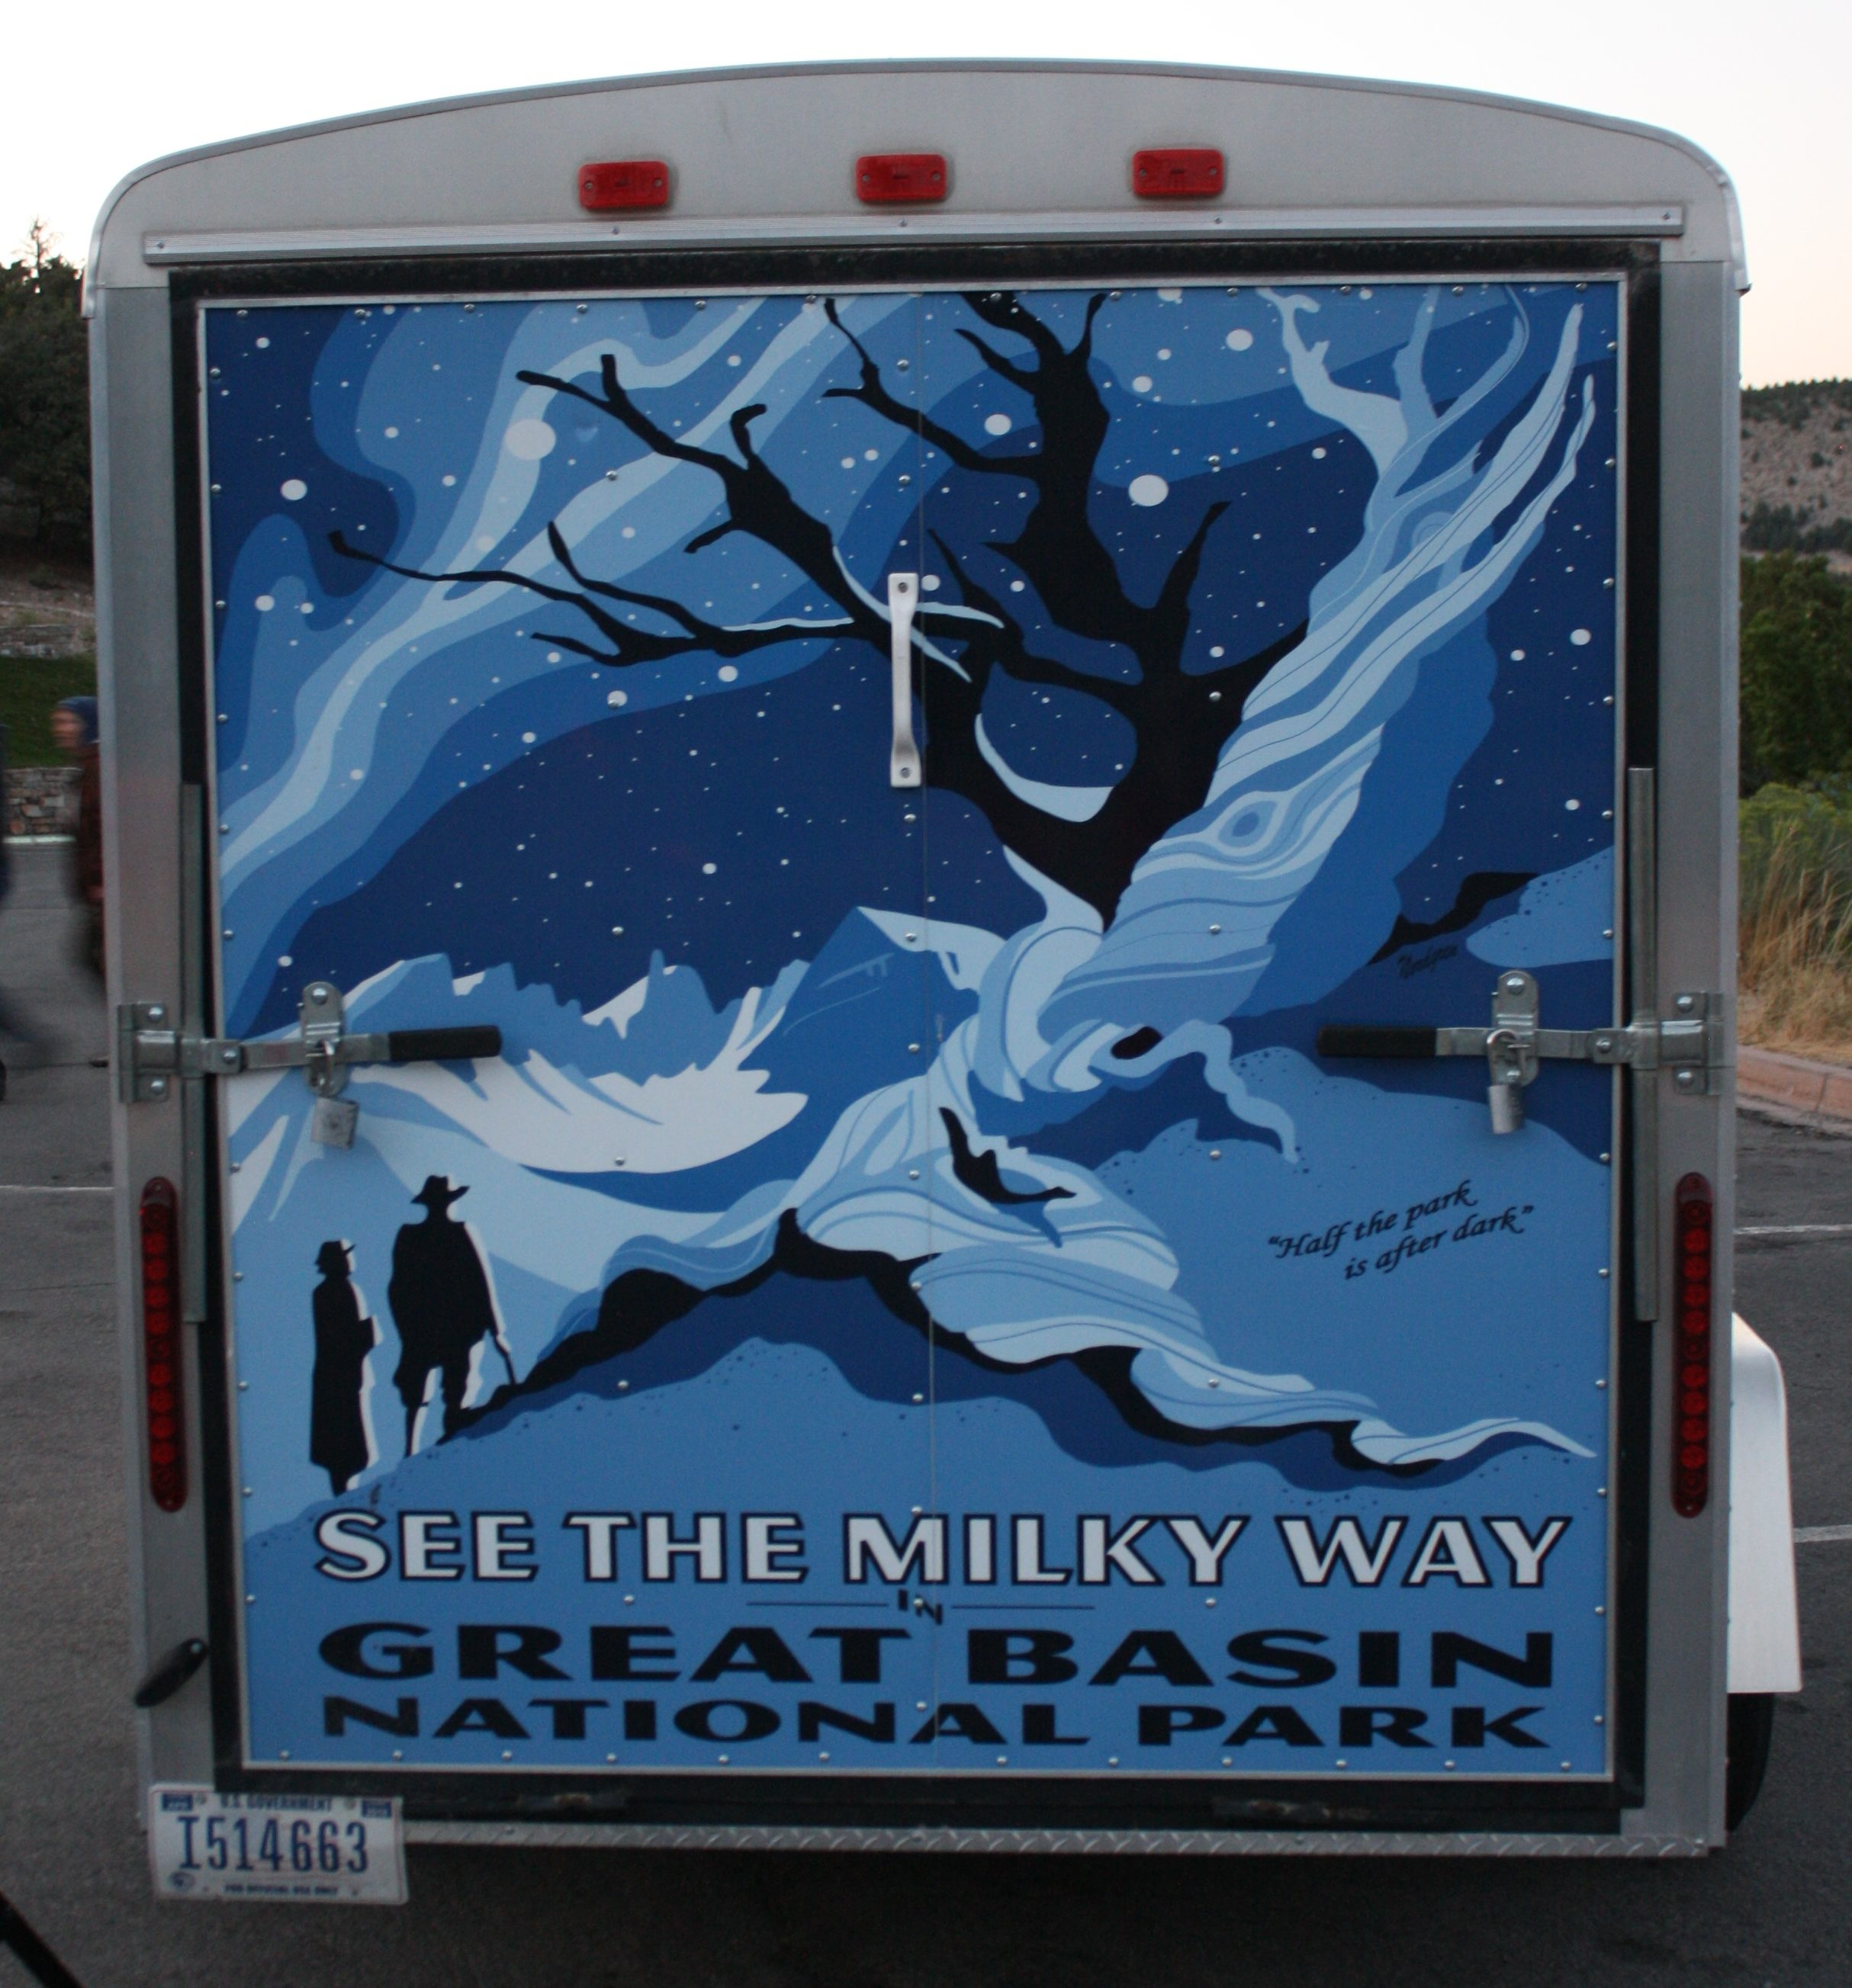 astronomy trailer, Great Basin National Park, StGeorgeNews.com